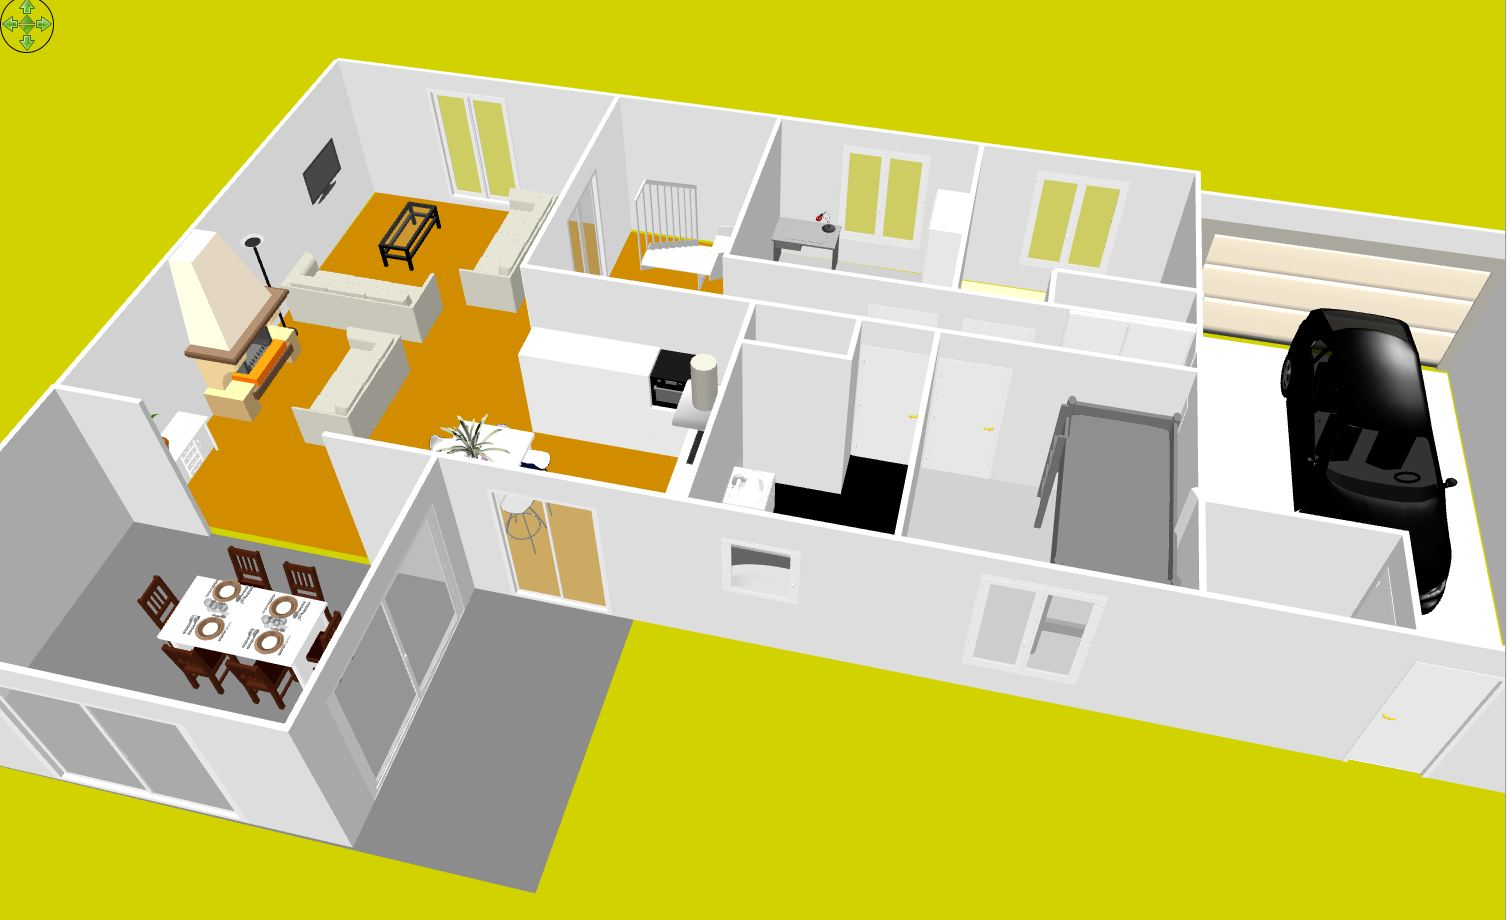 Plan am nagement maison gratuit for Plan amenagement interieur maison gratuit